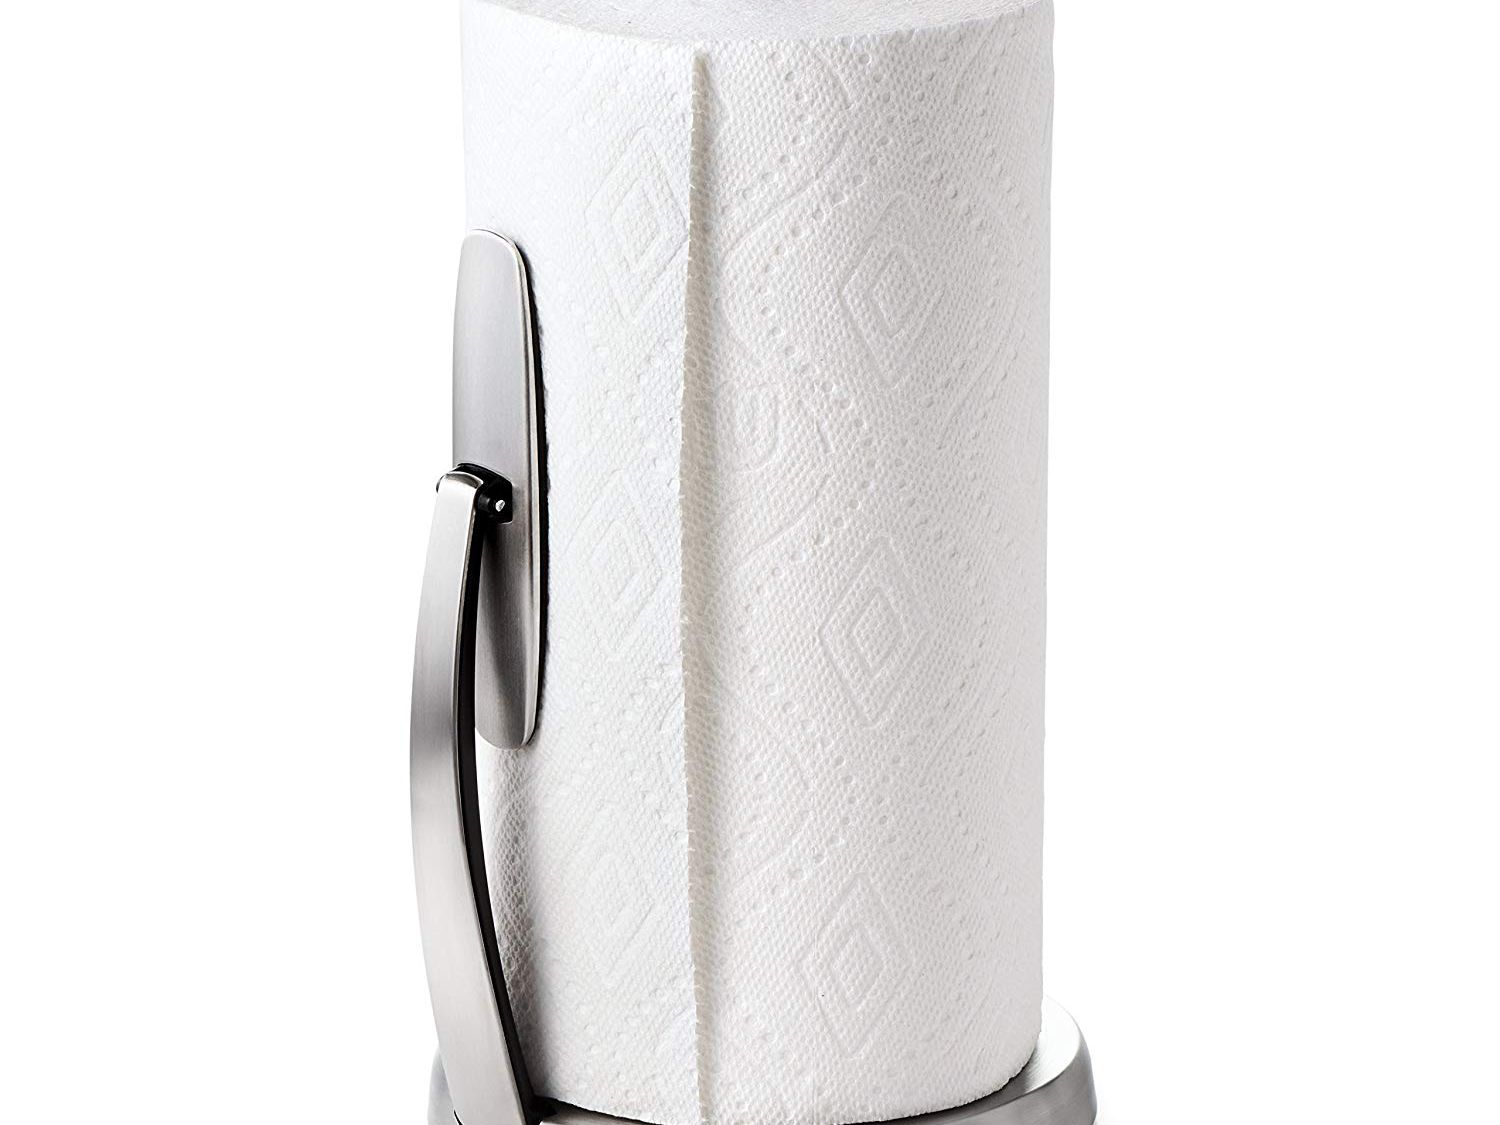 The 8 Best Paper Towel Holders Of 2019